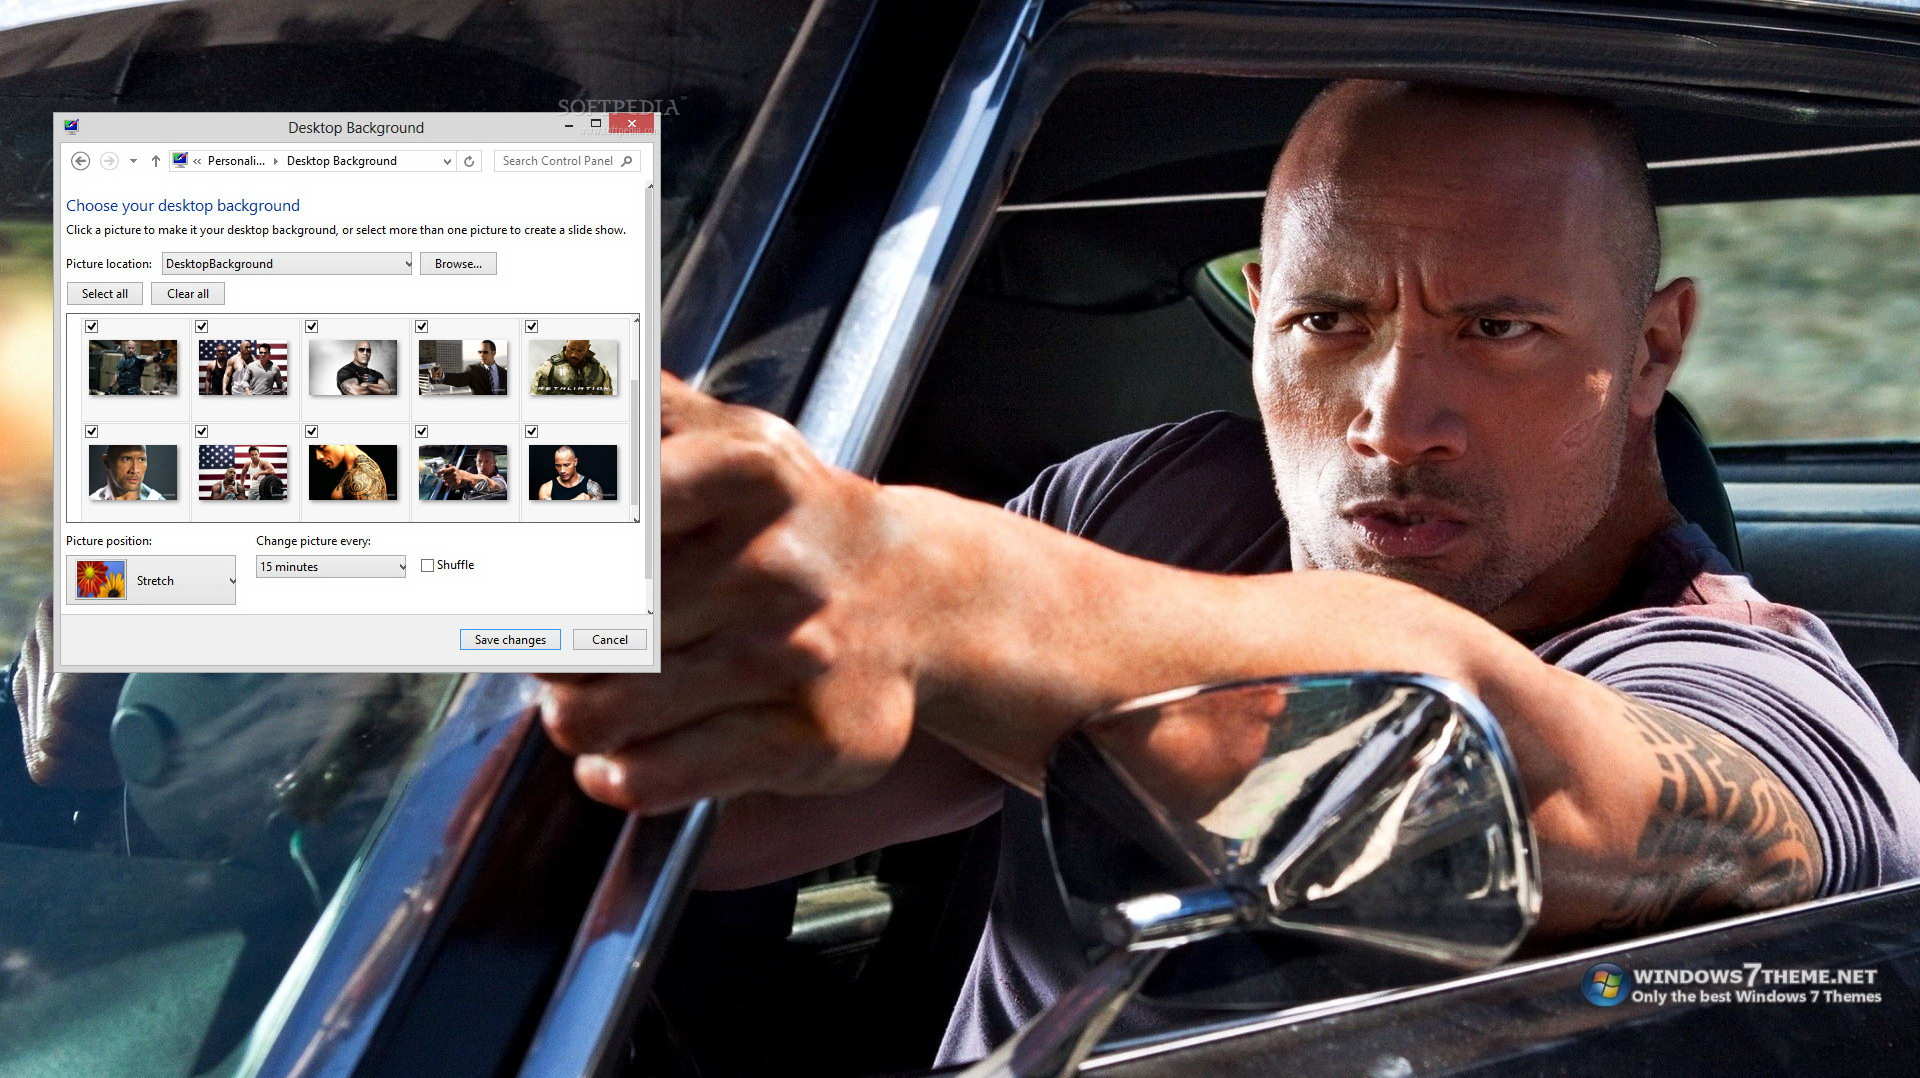 Dwayne Johnson Windows 7 Theme